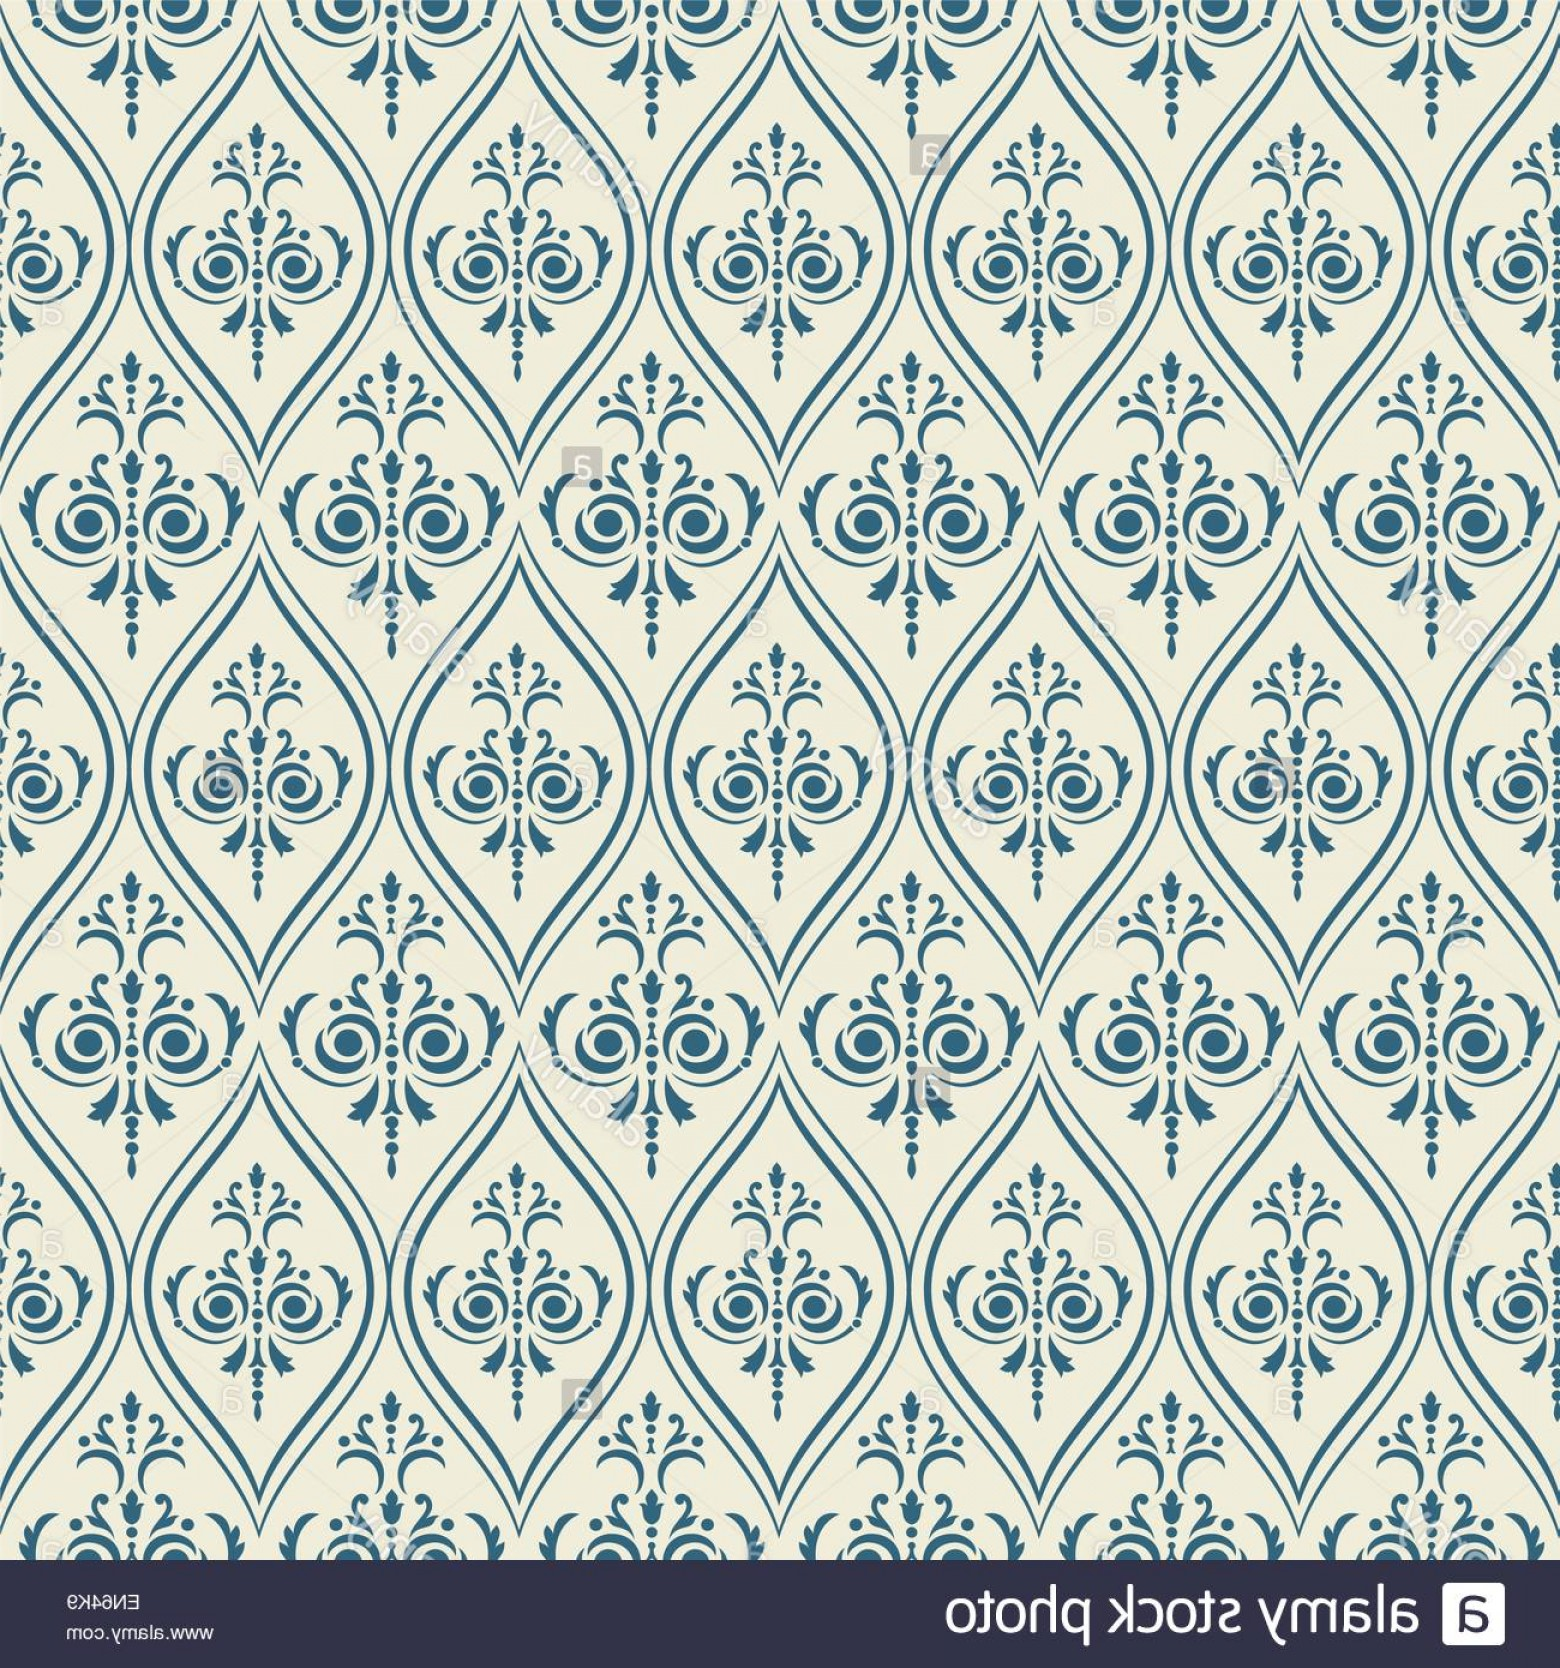 Damask Background Vector Art: Stock Photo Damask Pattern Seamless Vintage Background Vector Illustration